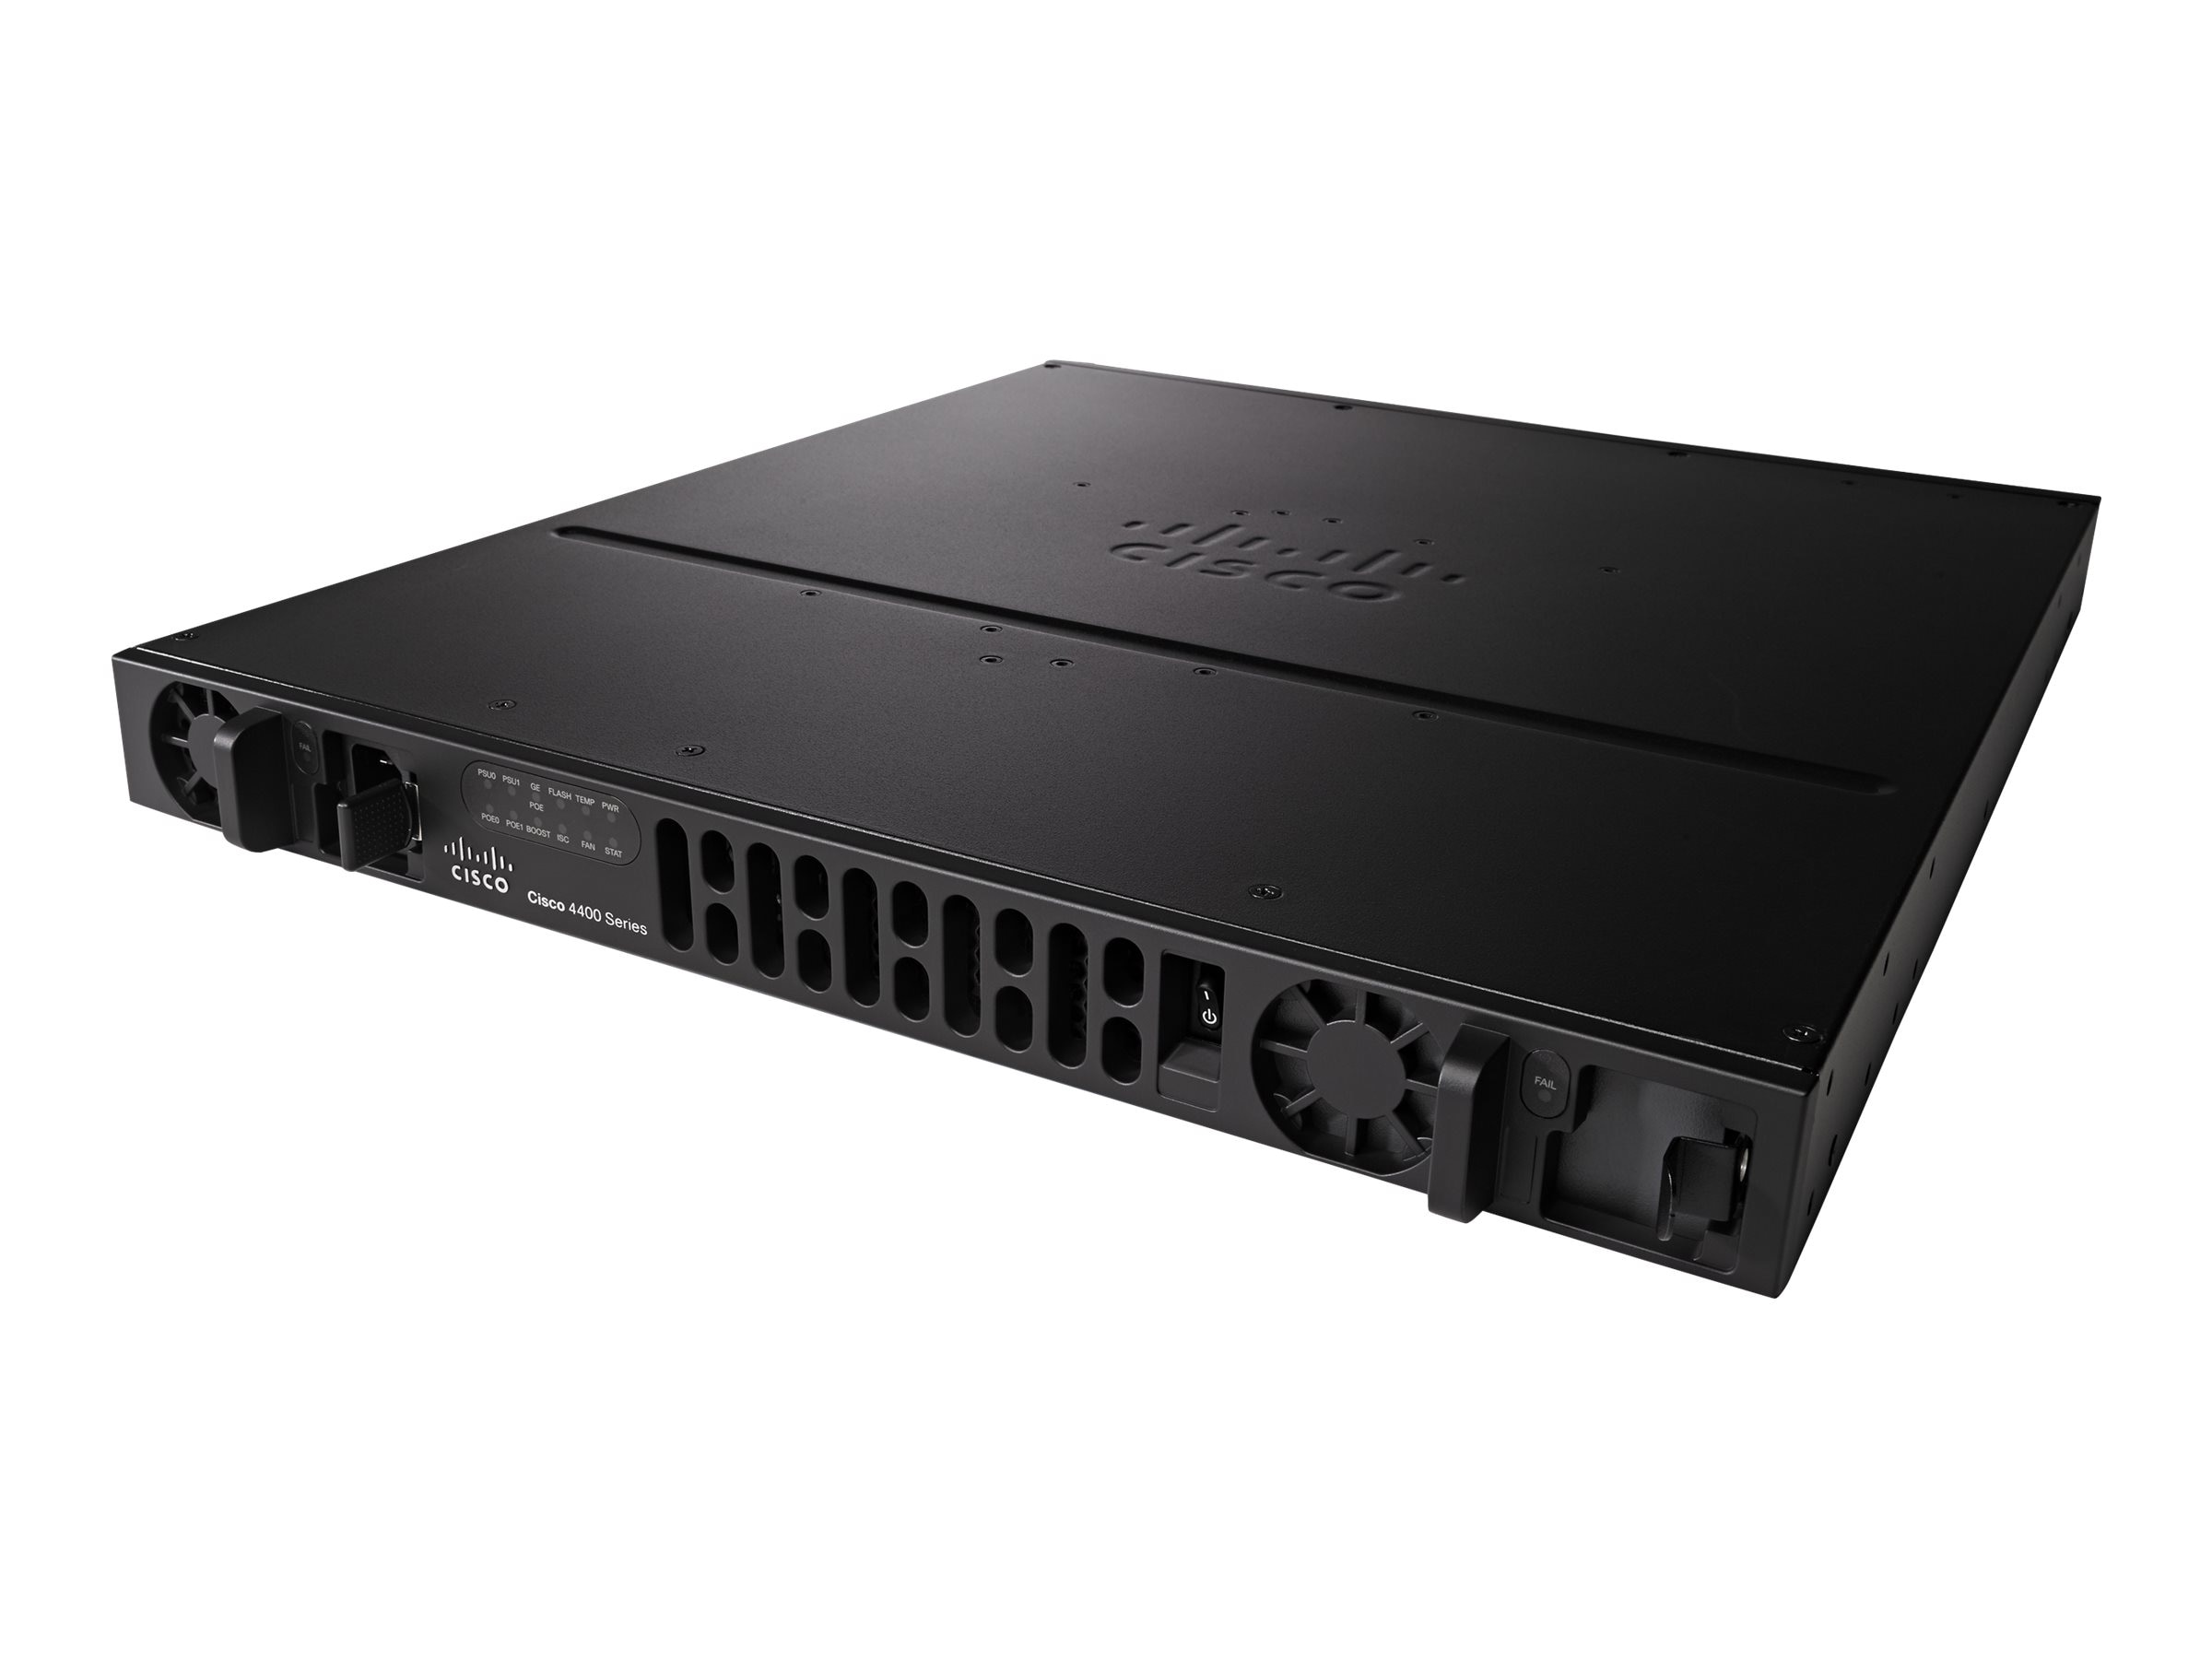 Refurb. Cisco ISR 4431 Security Bndl w SEC License, ISR4431-SEC/K9-RF